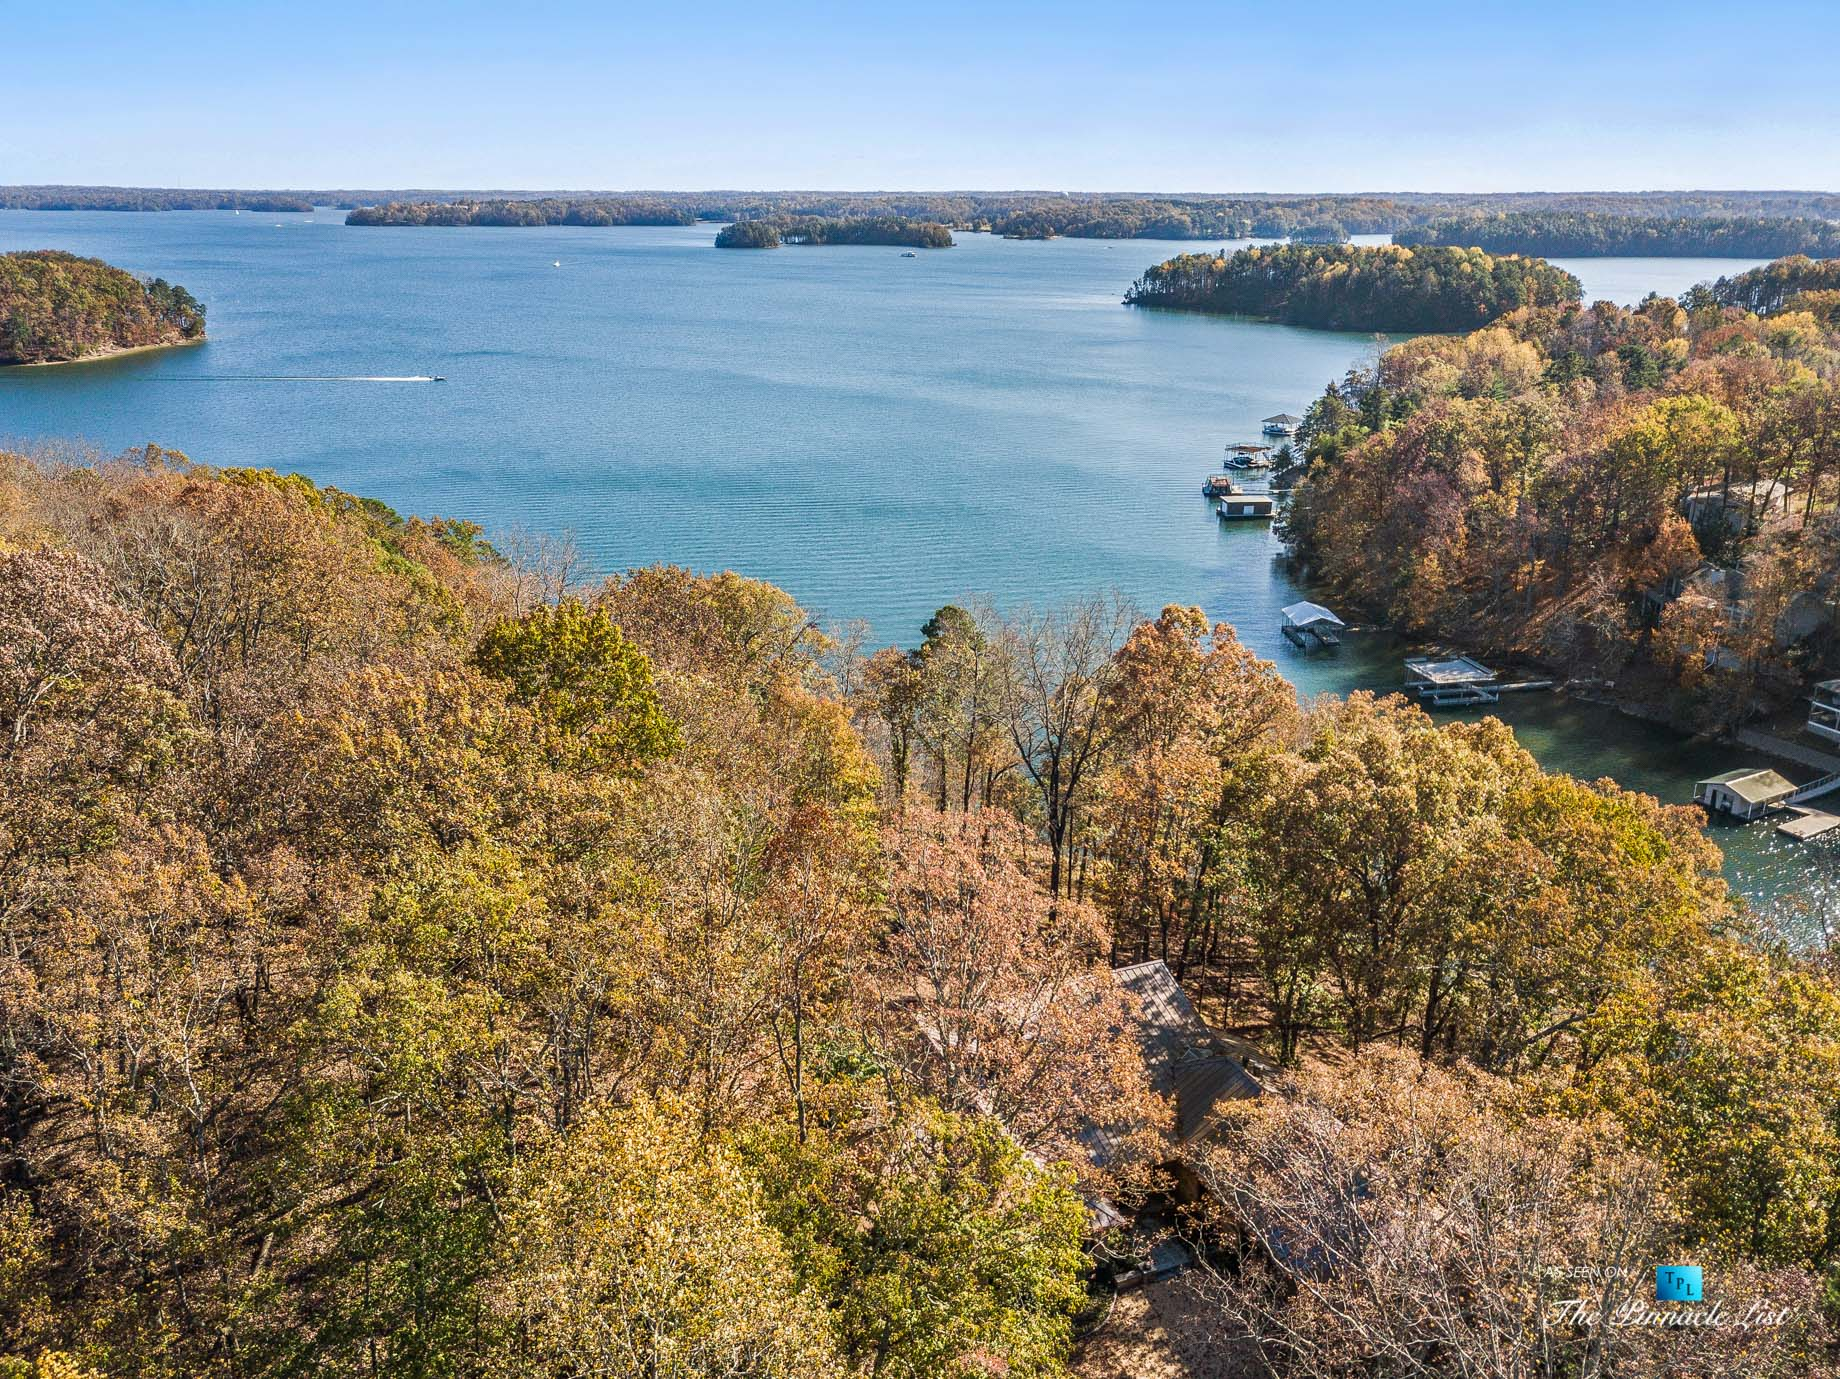 7860 Chestnut Hill Rd, Cumming, GA, USA – Drone Aerial Lake View – Luxury Real Estate – Lake Lanier Mid-Century Modern Stone Home